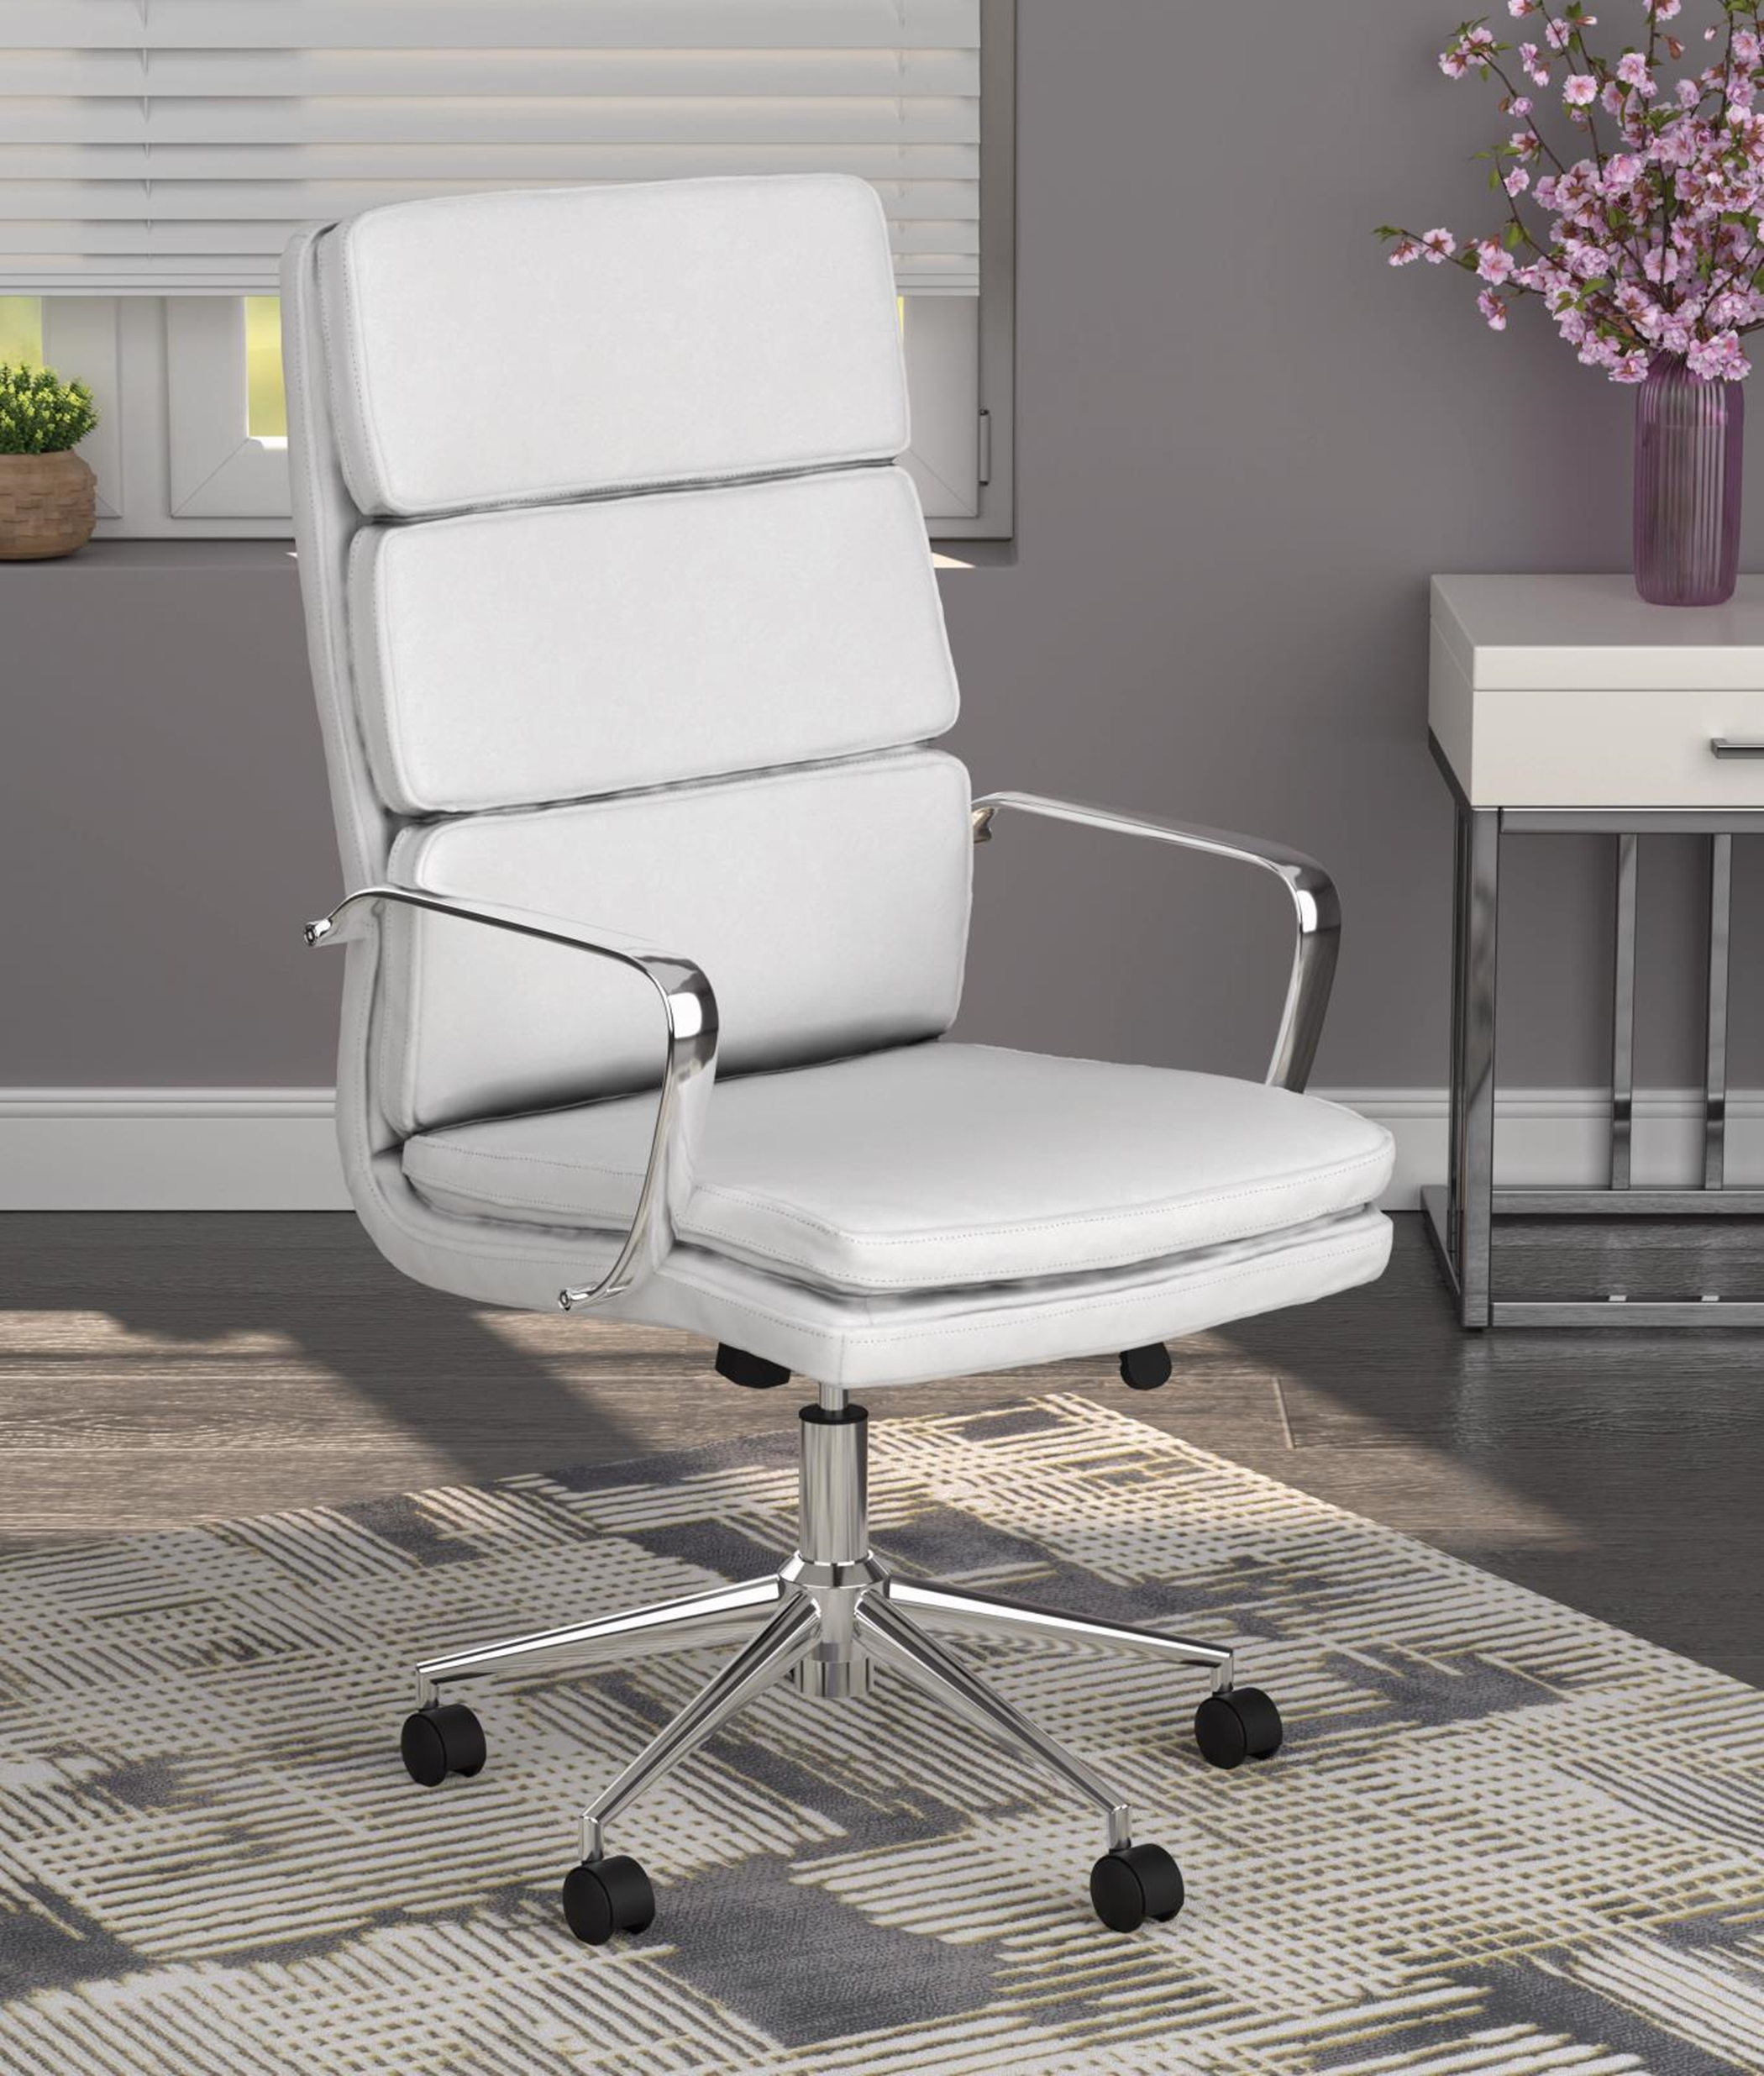 801746 - Office Chair